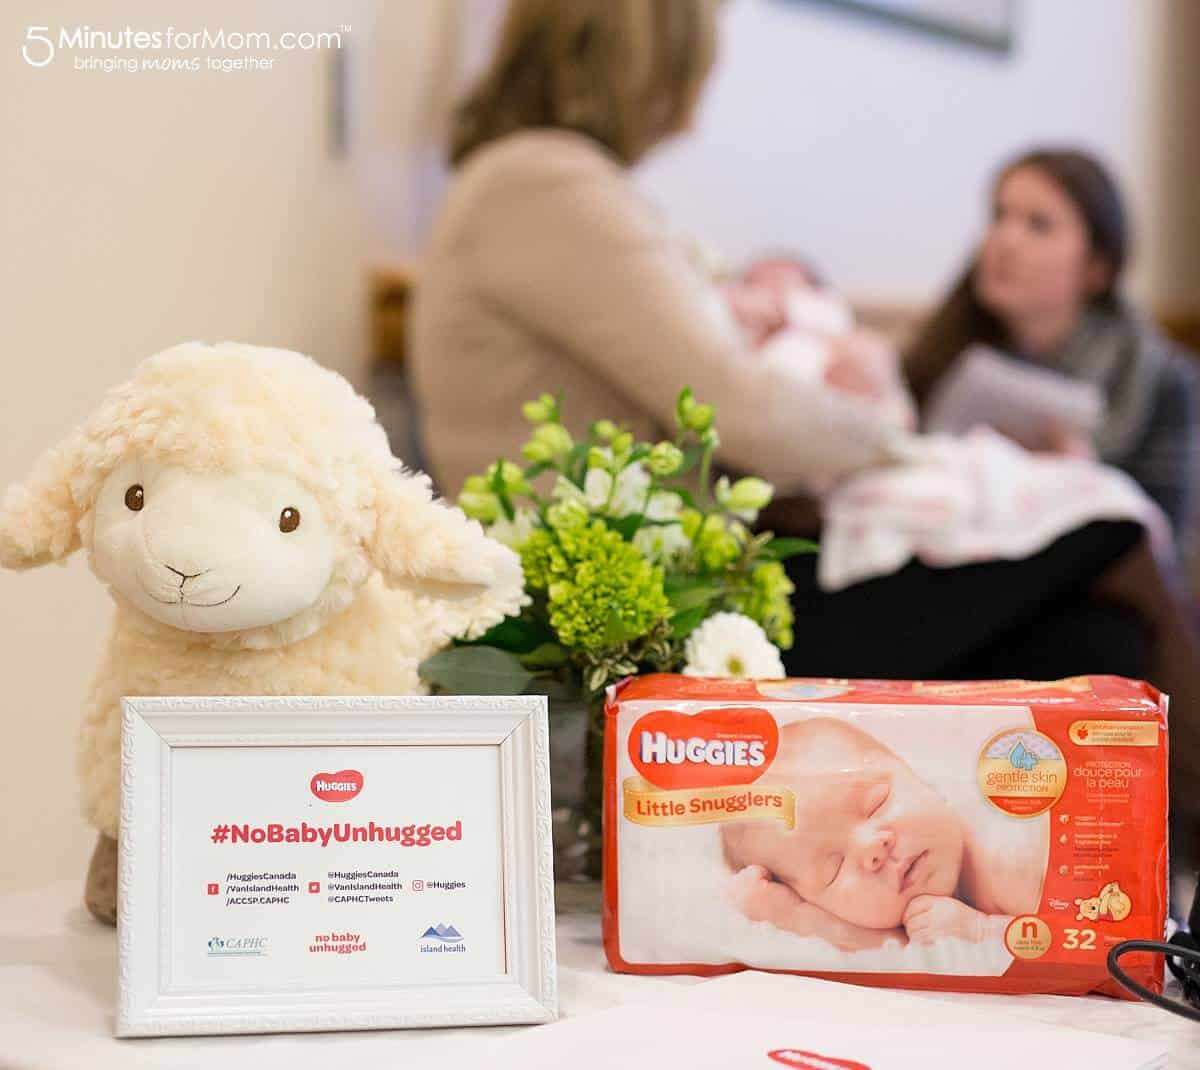 No Baby Unhugged NICU newborn program with Huggies